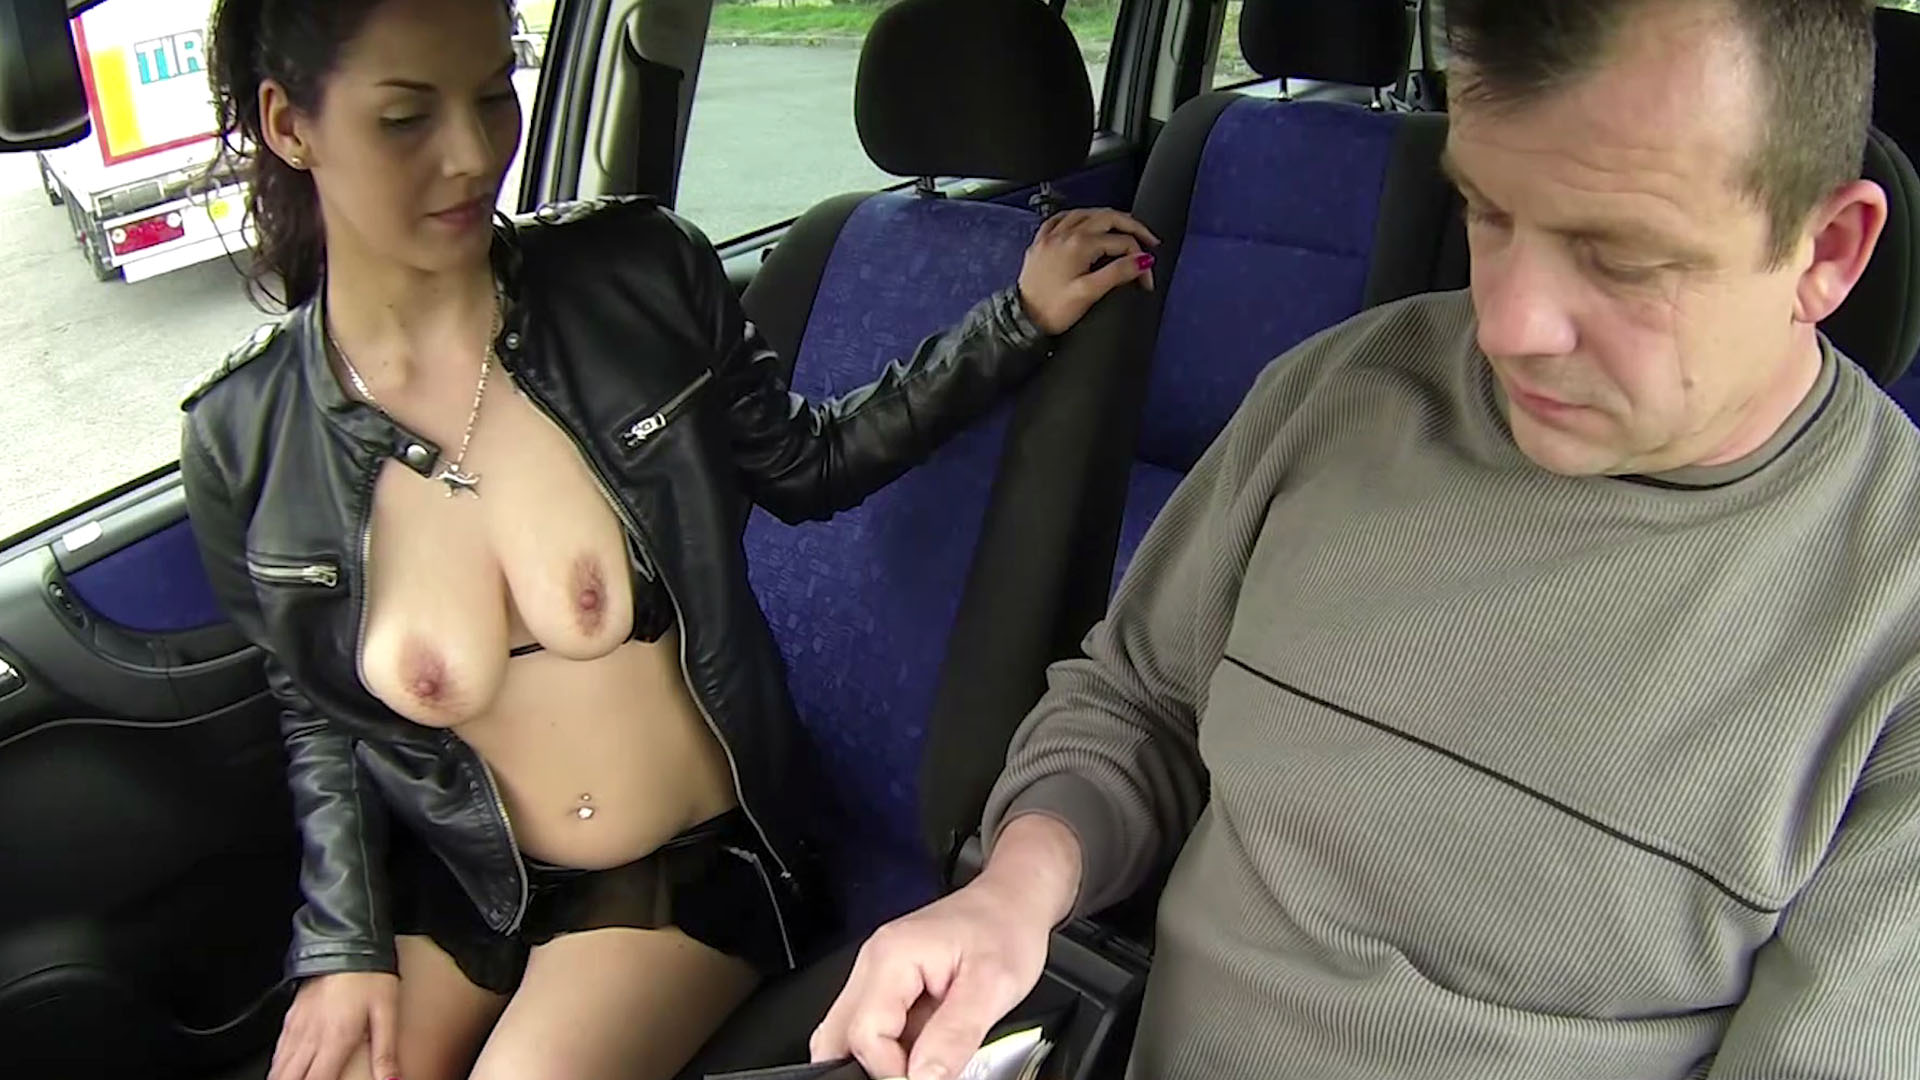 Slut and Cops